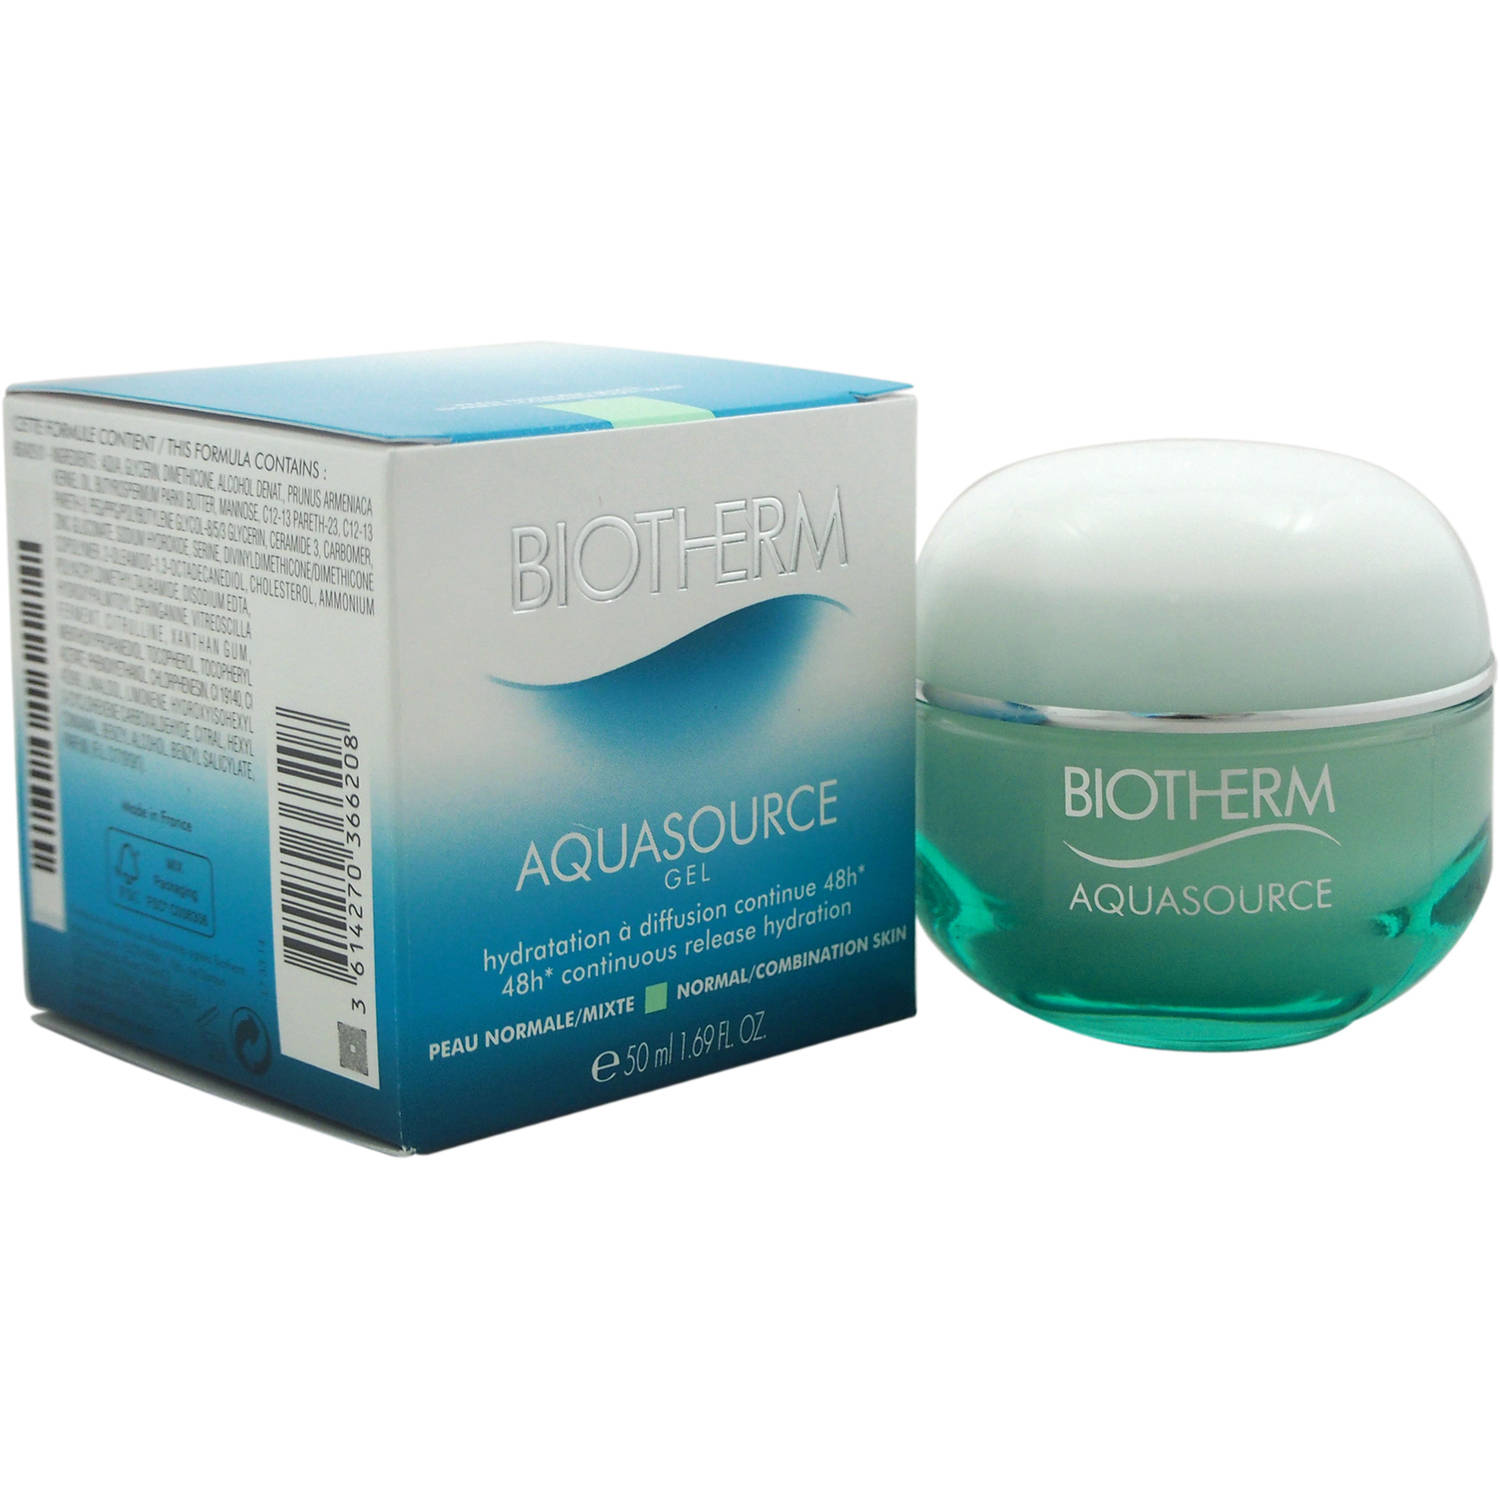 Biotherm Aquasource Gel 48H Continuous Release Hydration, 1.69 fl oz